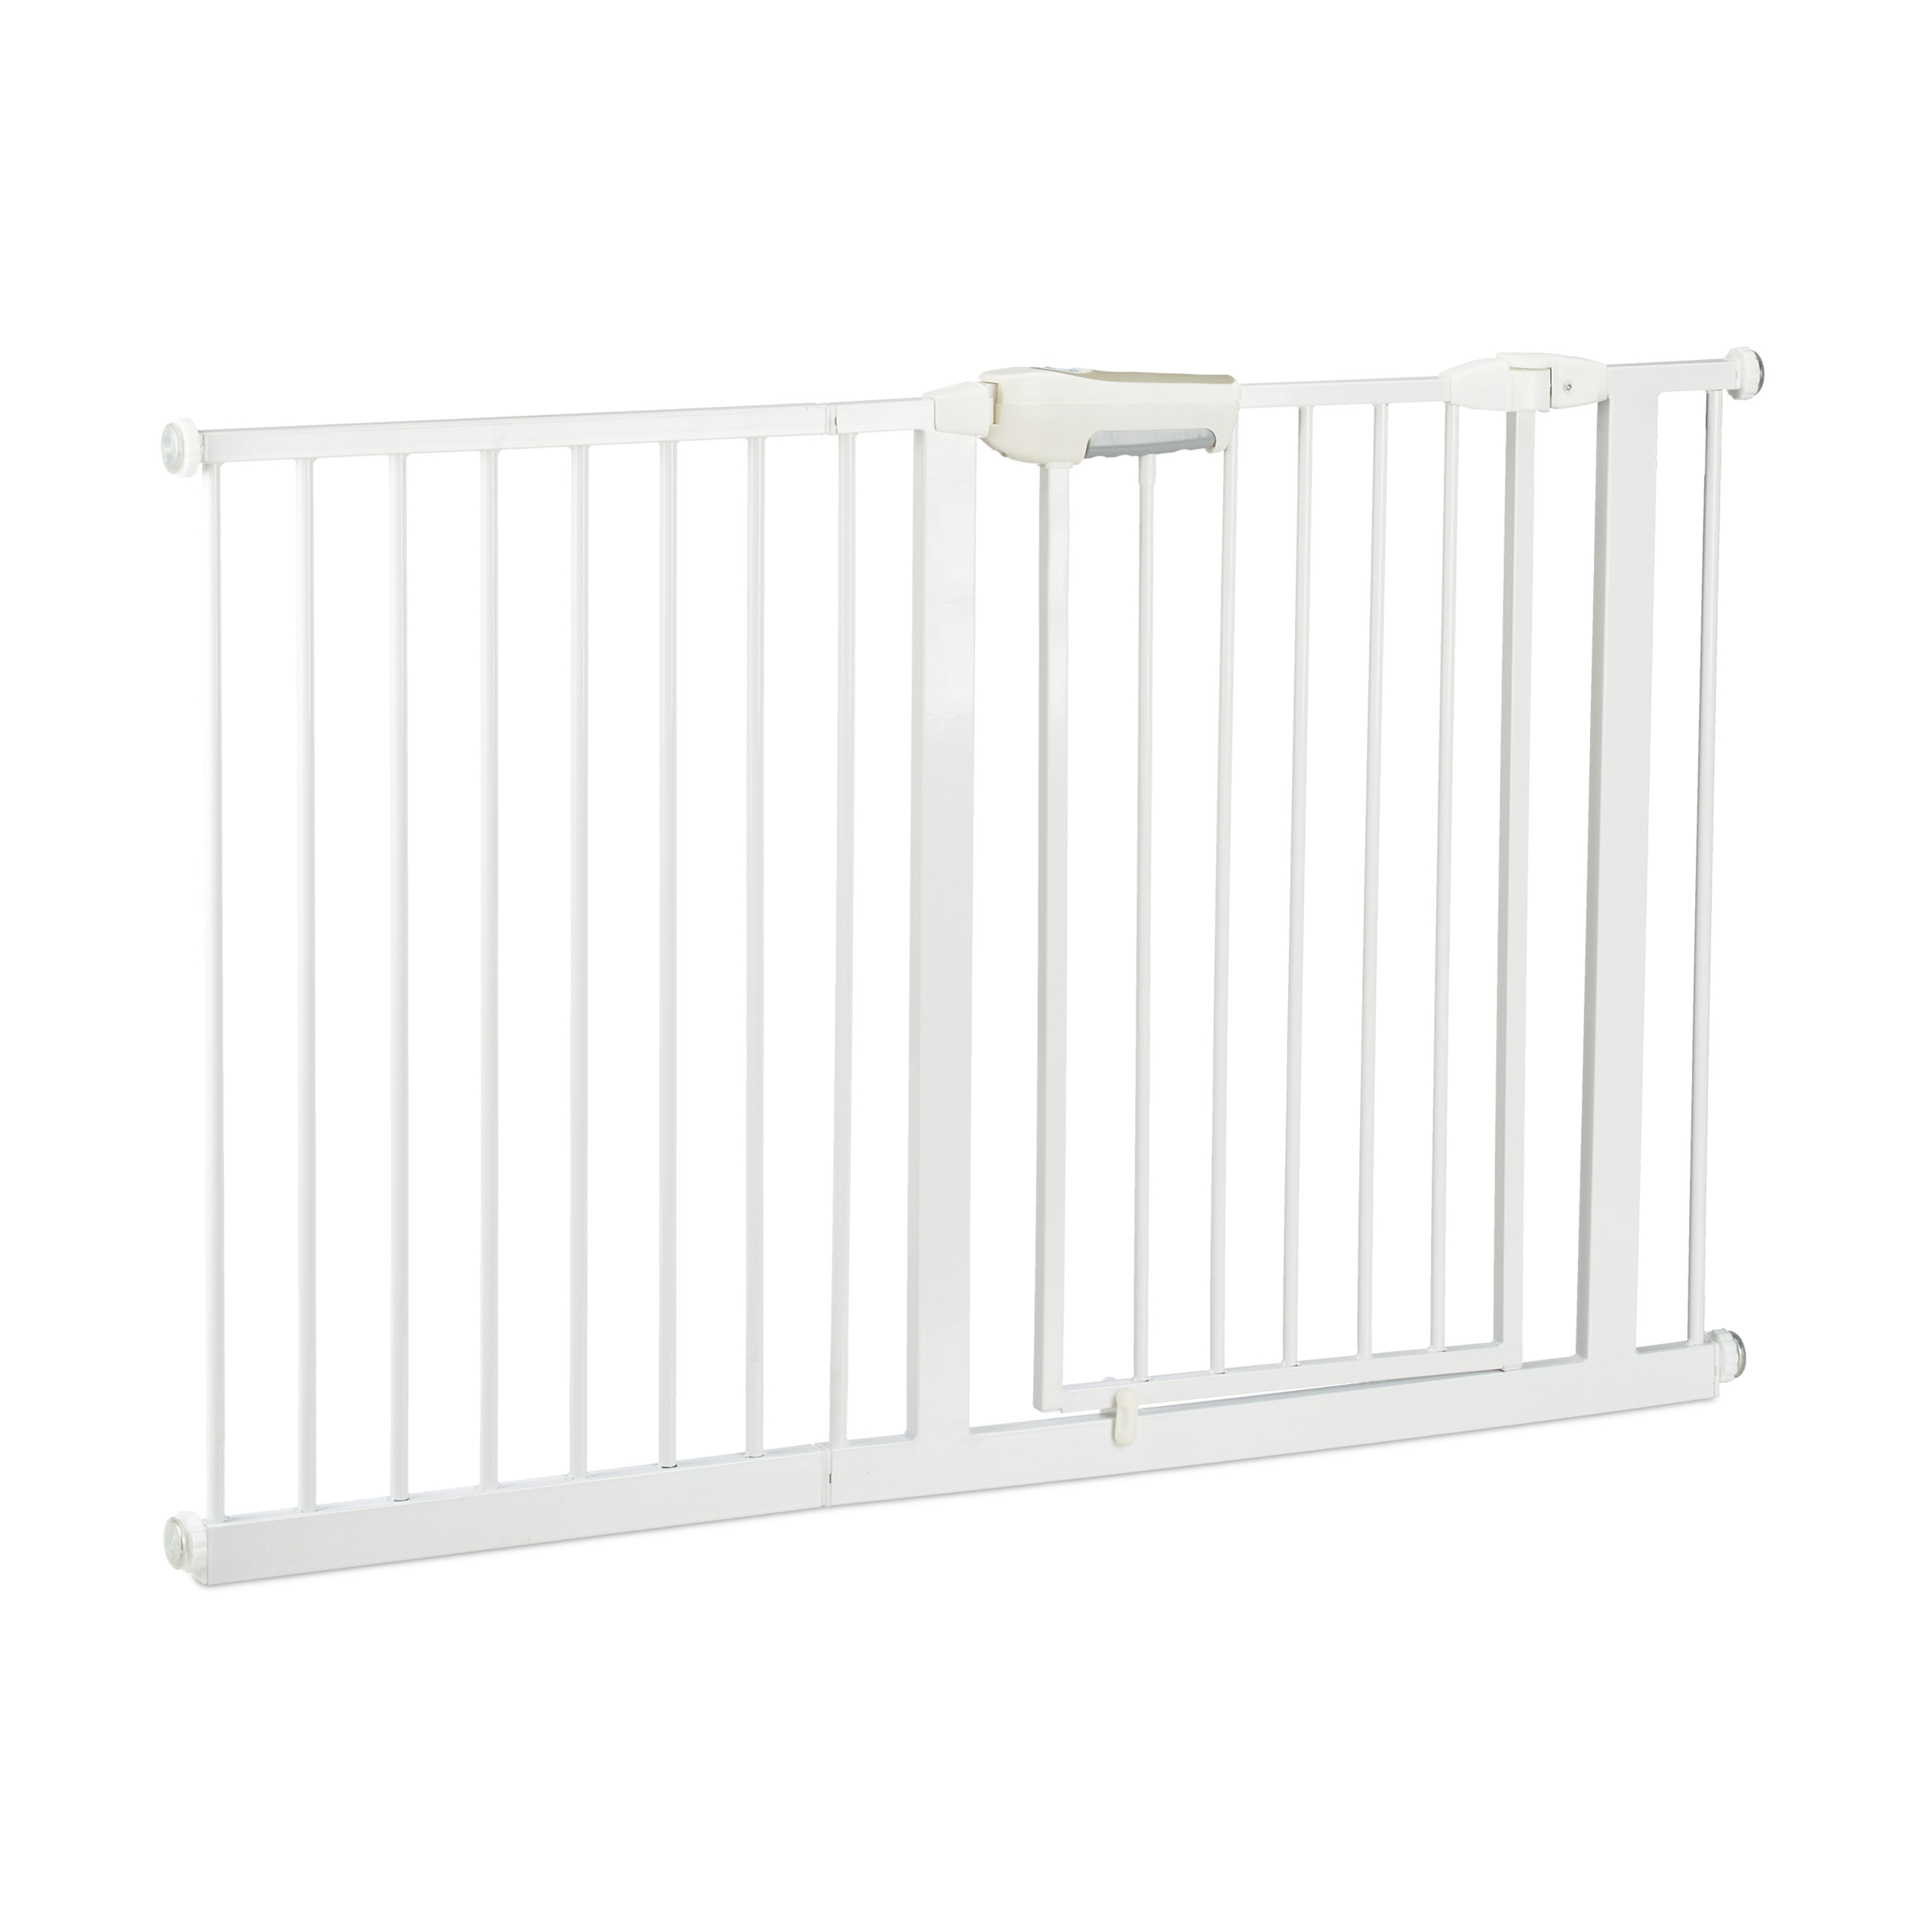 Pressure-Fit-Baby-Safety-Gate-Extension-Security-Barrier-for-Stairs-and-Doors thumbnail 35